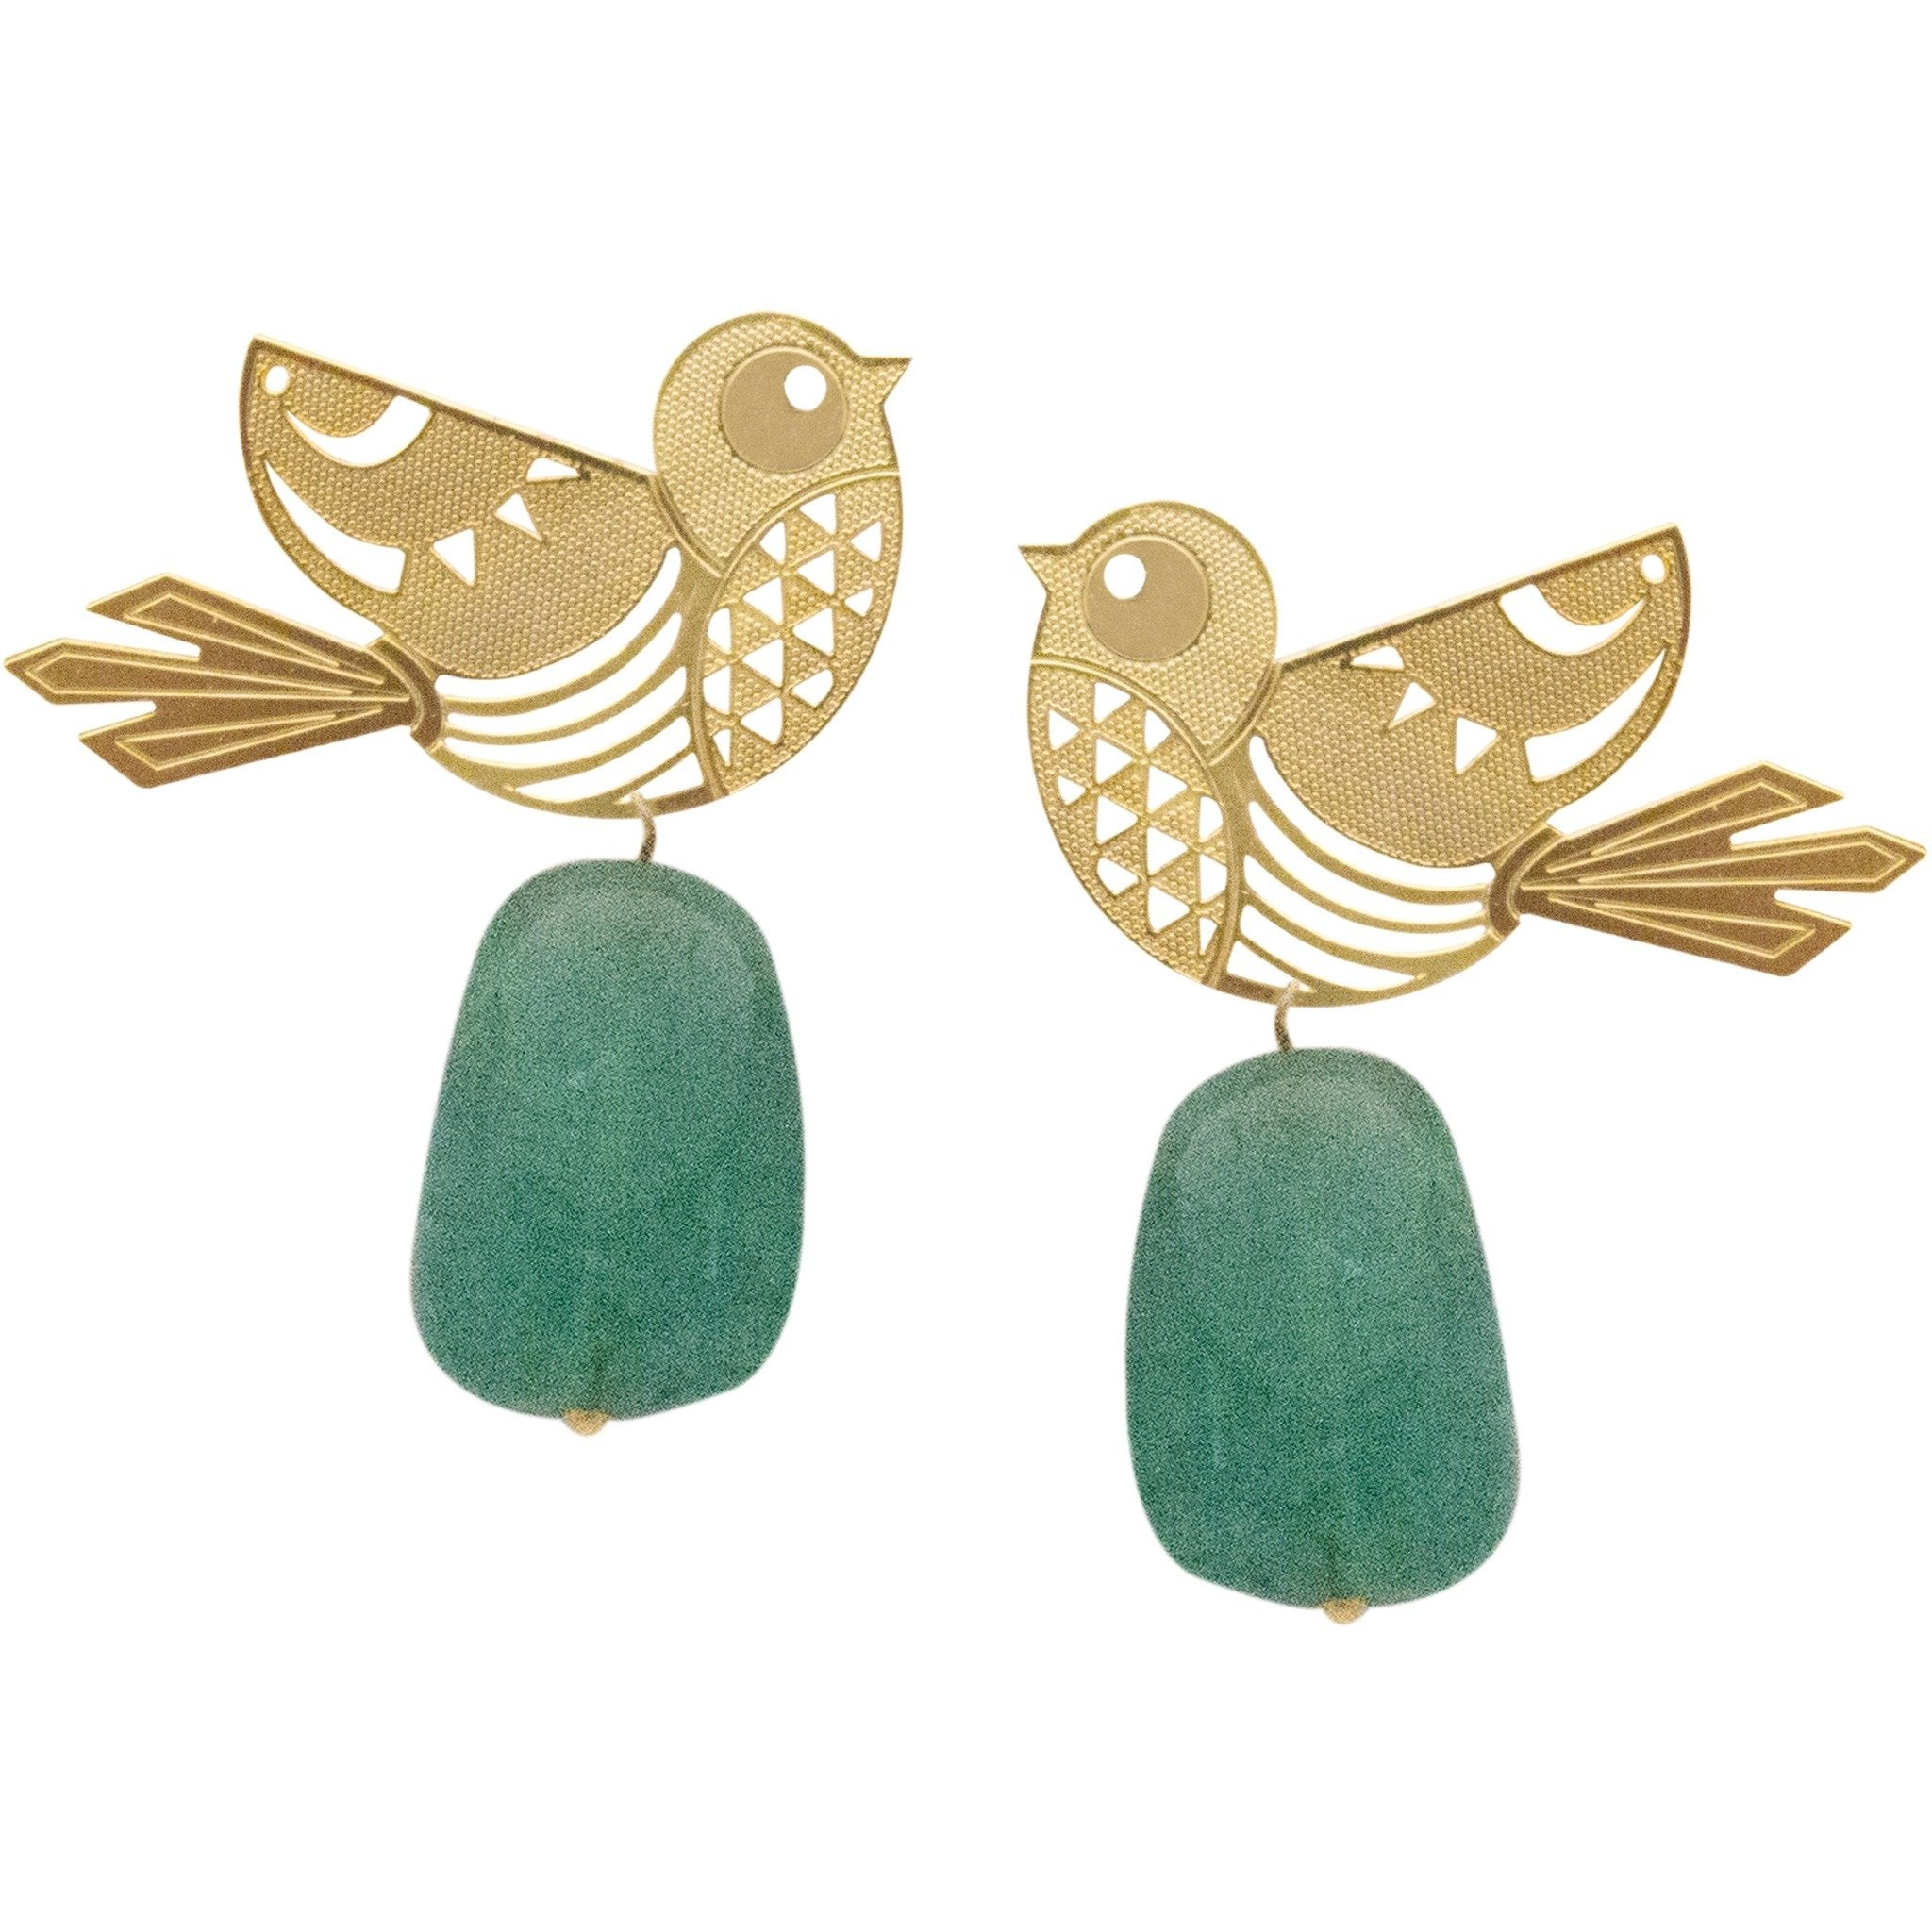 brie small chirping birds with dangling stones catchcat